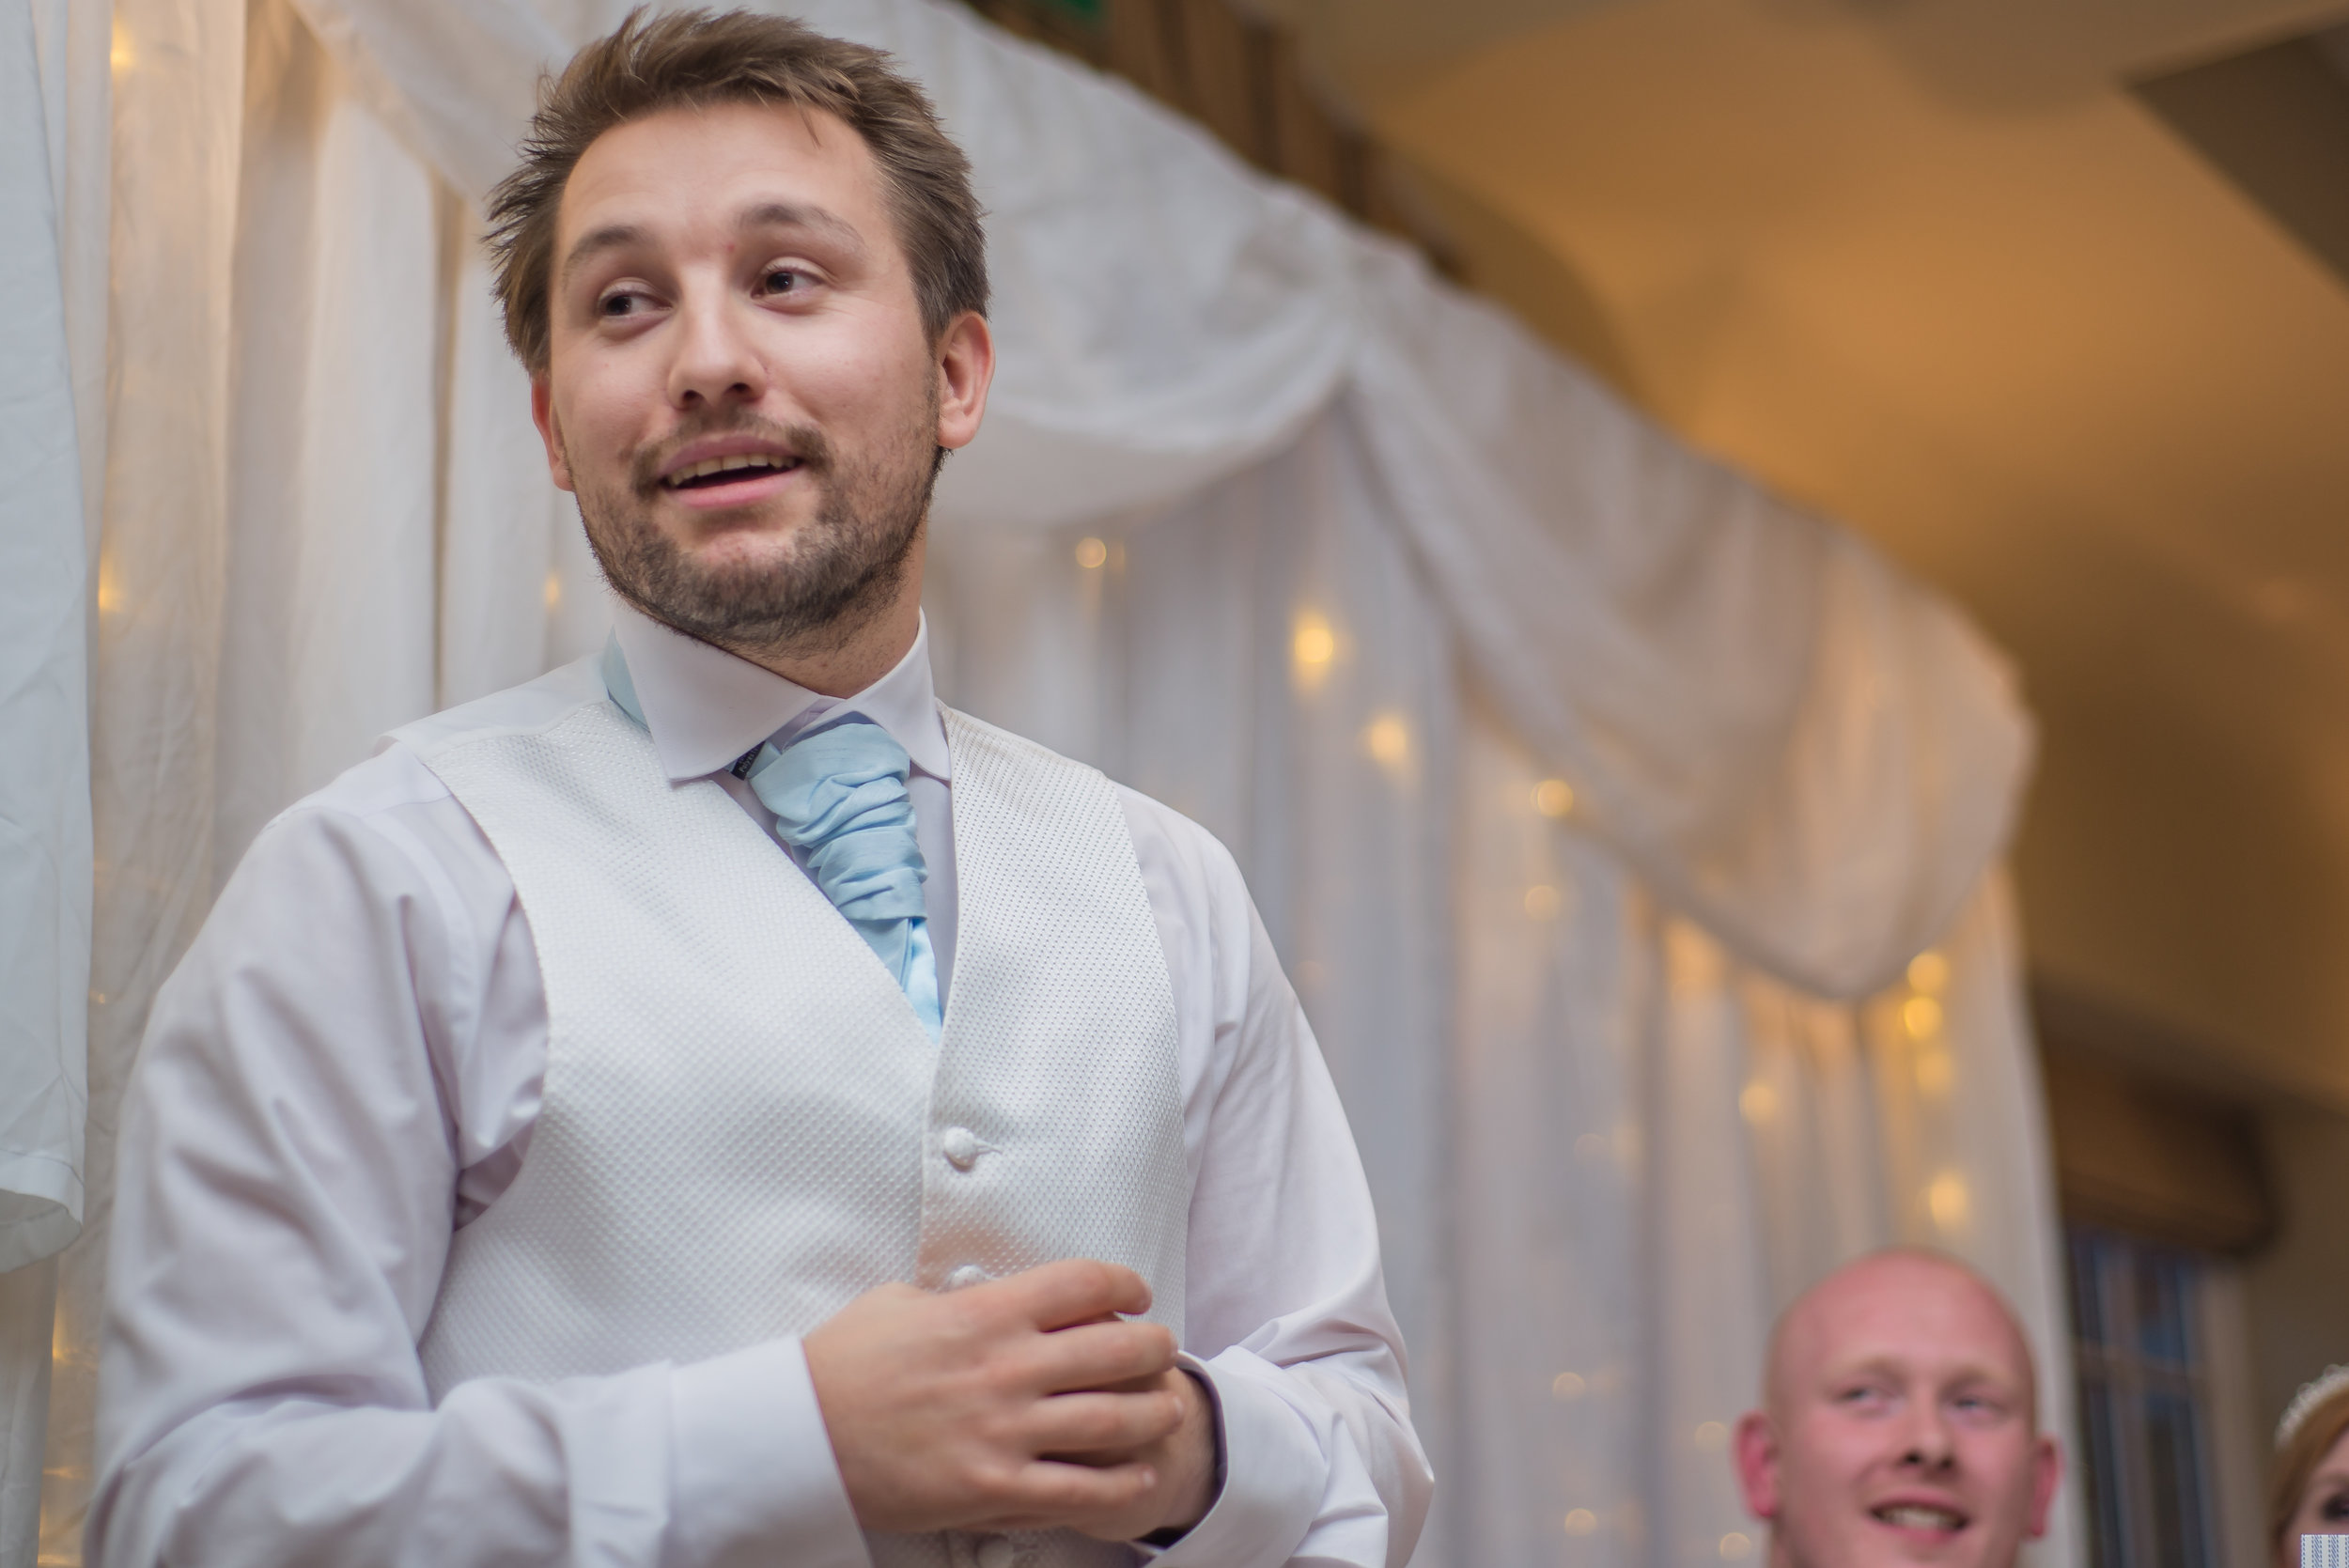 wedding photography and wedding videography, best man sam doing his speech